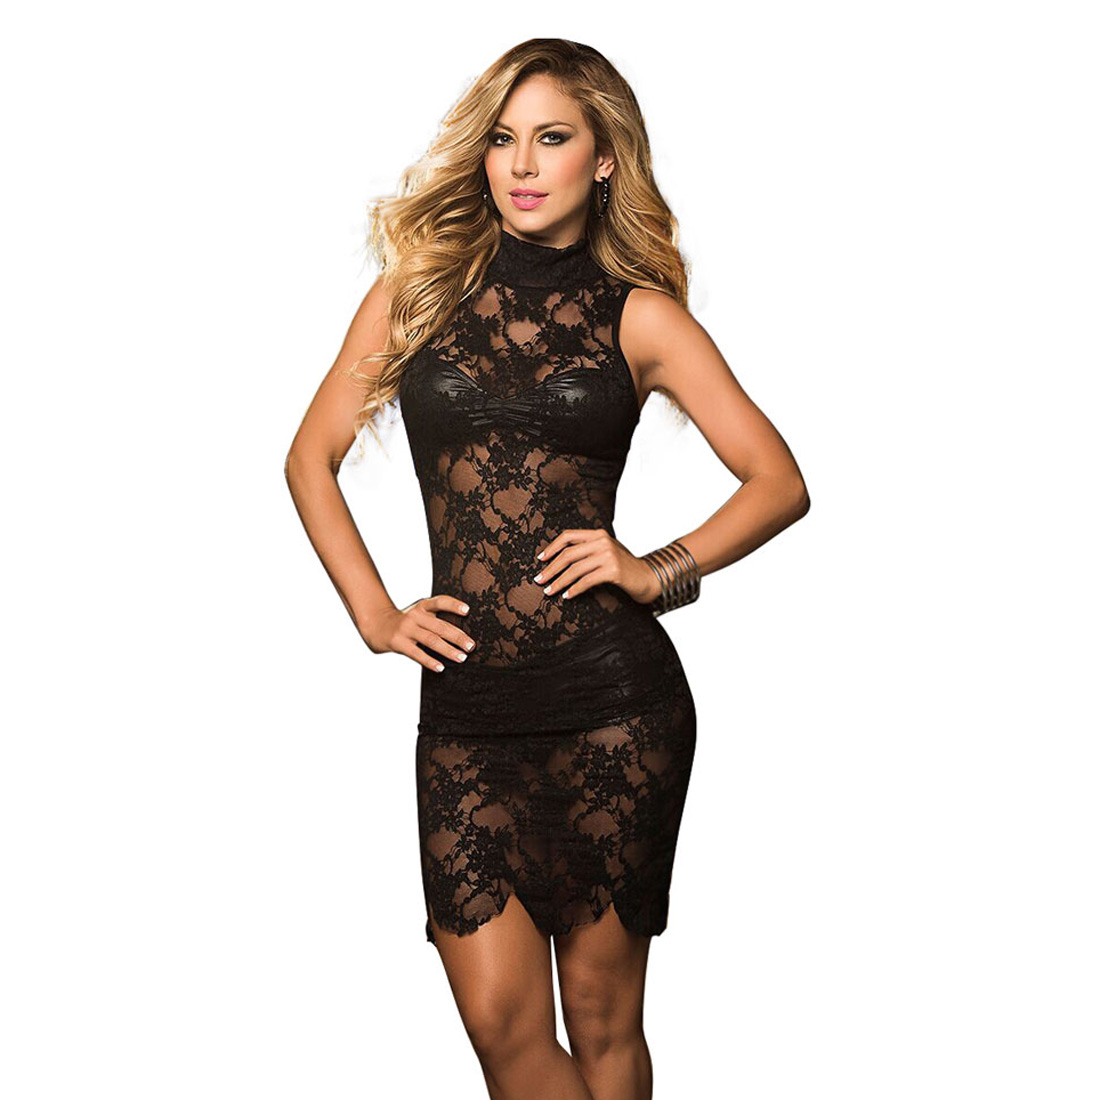 Are you looking for Mini Dresses online? distrib-ah3euse9.tk offers the latest high quality sexy Mini Dresses for women at great prices. Free shipping world wide.